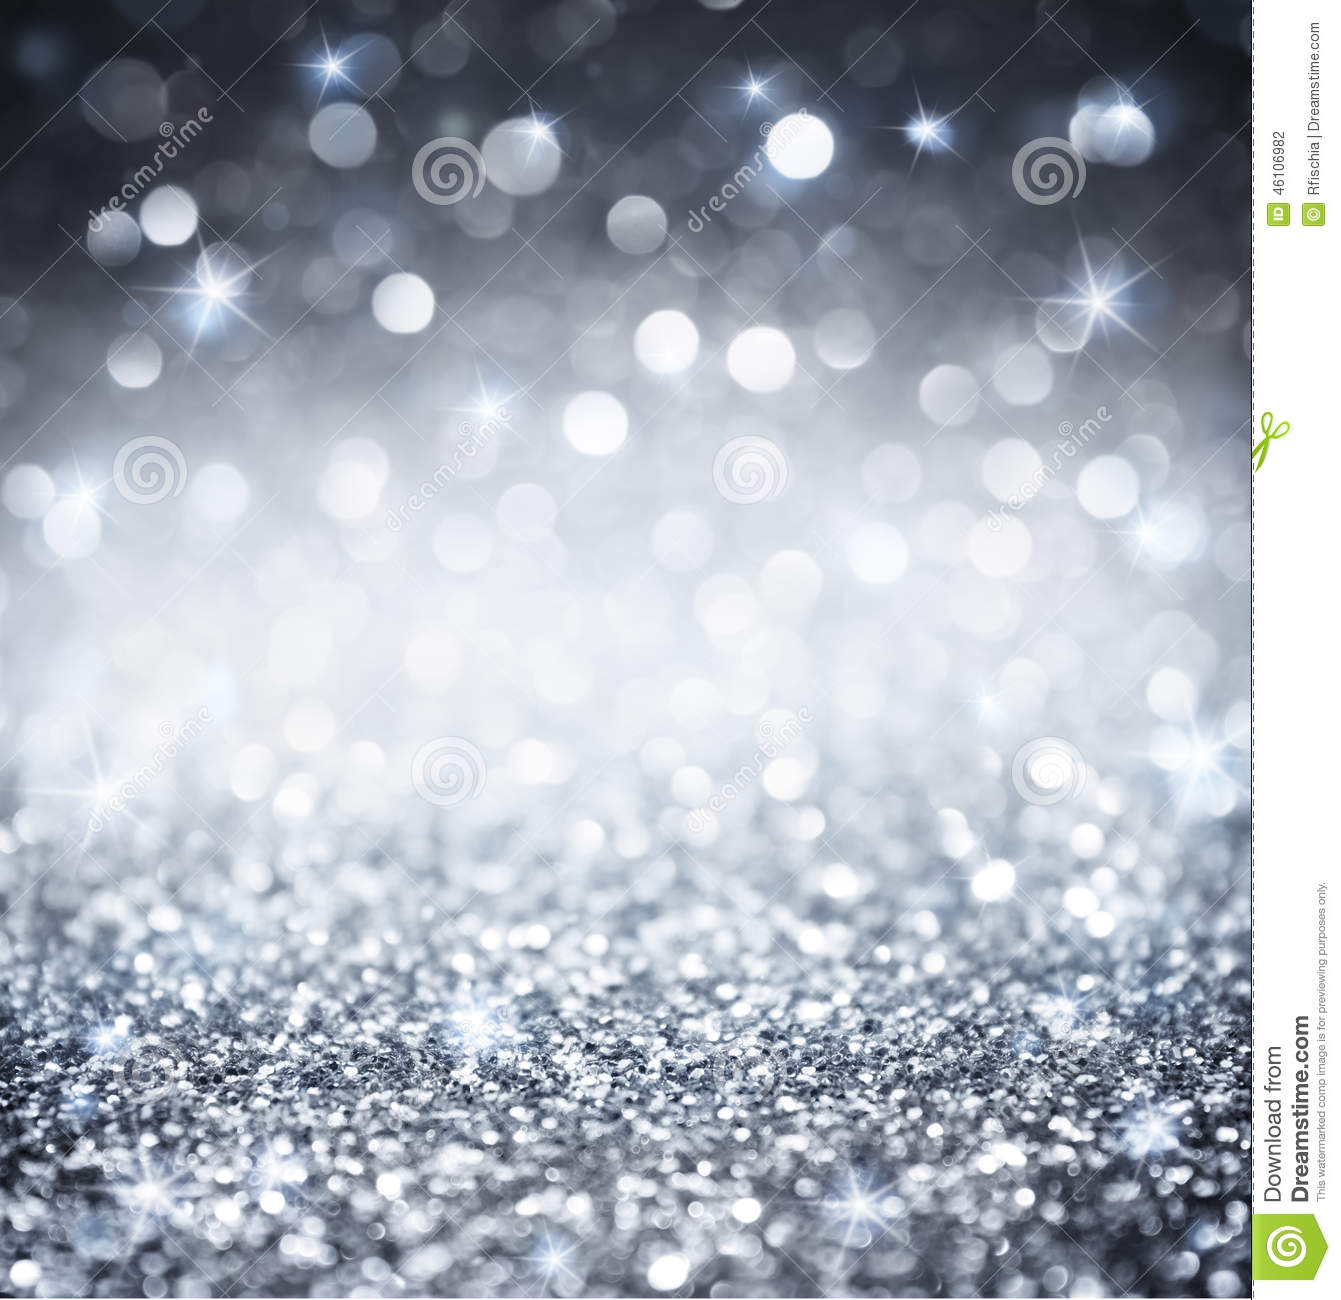 Download Silver Glitter - Shiny For Christmas Stock Photo - Image of silver, background: 46106982